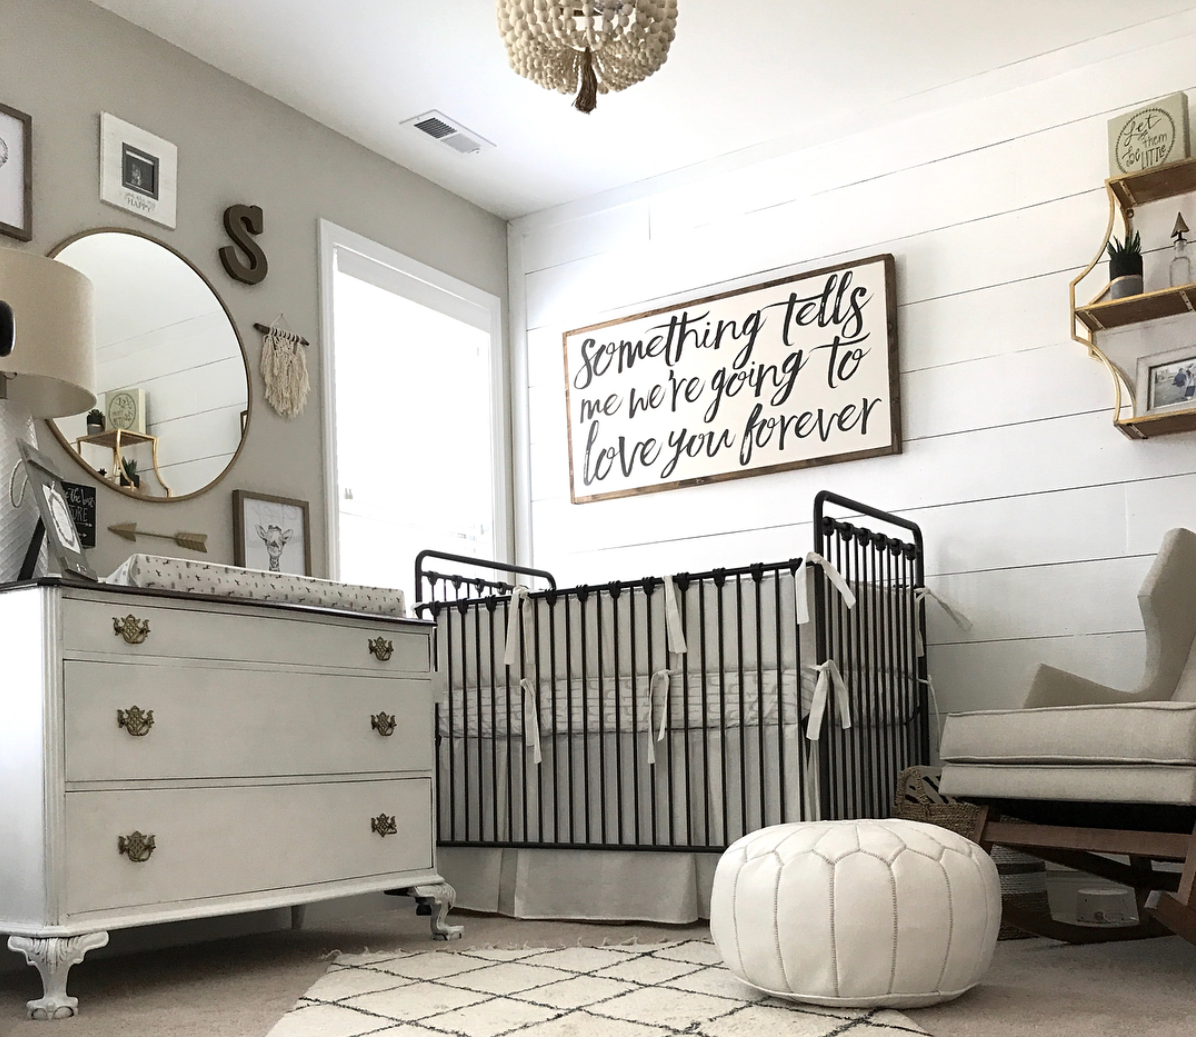 13 Wall Designs Decor Ideas For Nursery: Pin On Rooms + Decor •• Little Ones